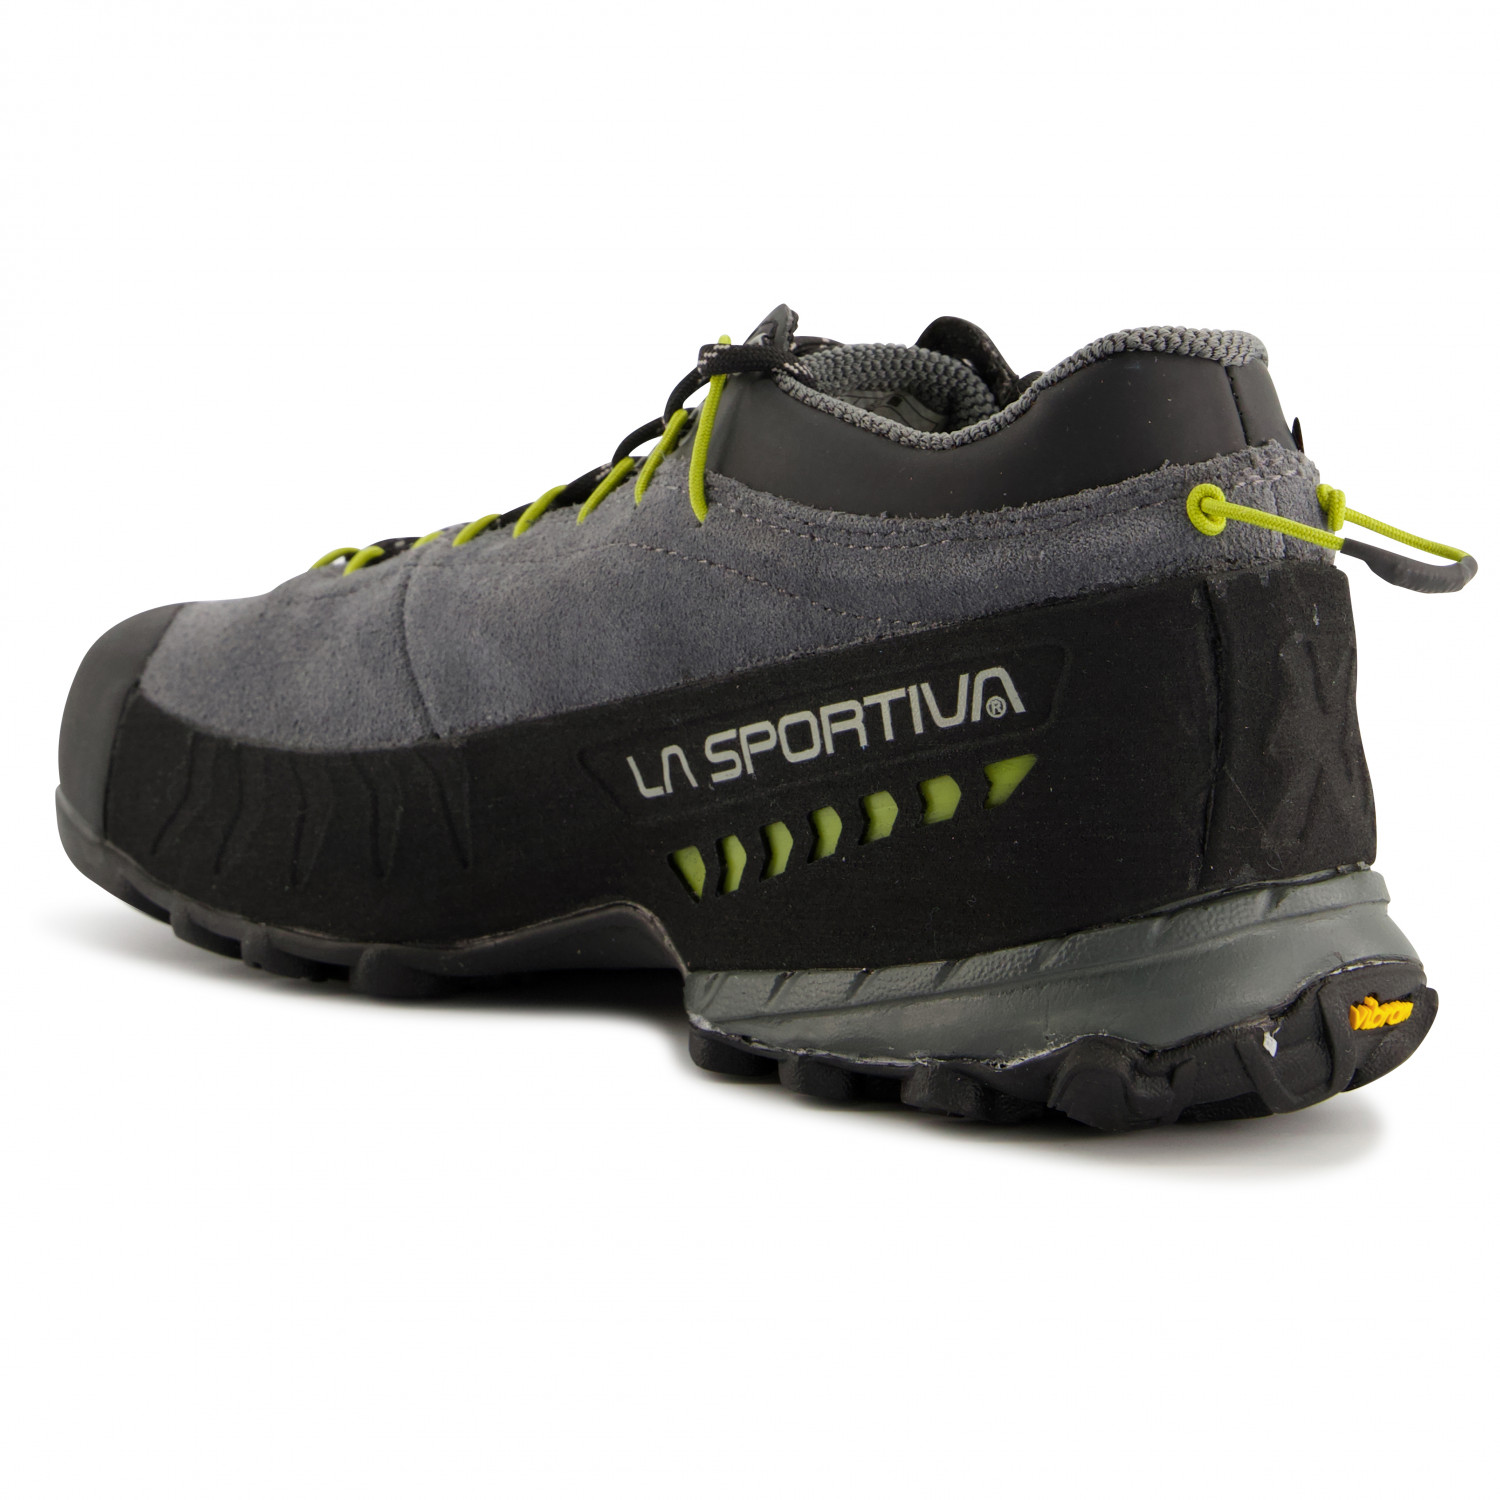 5fe471bf0d2 La Sportiva TX4 GTX - Approach Shoes Men's | Free UK Delivery ...